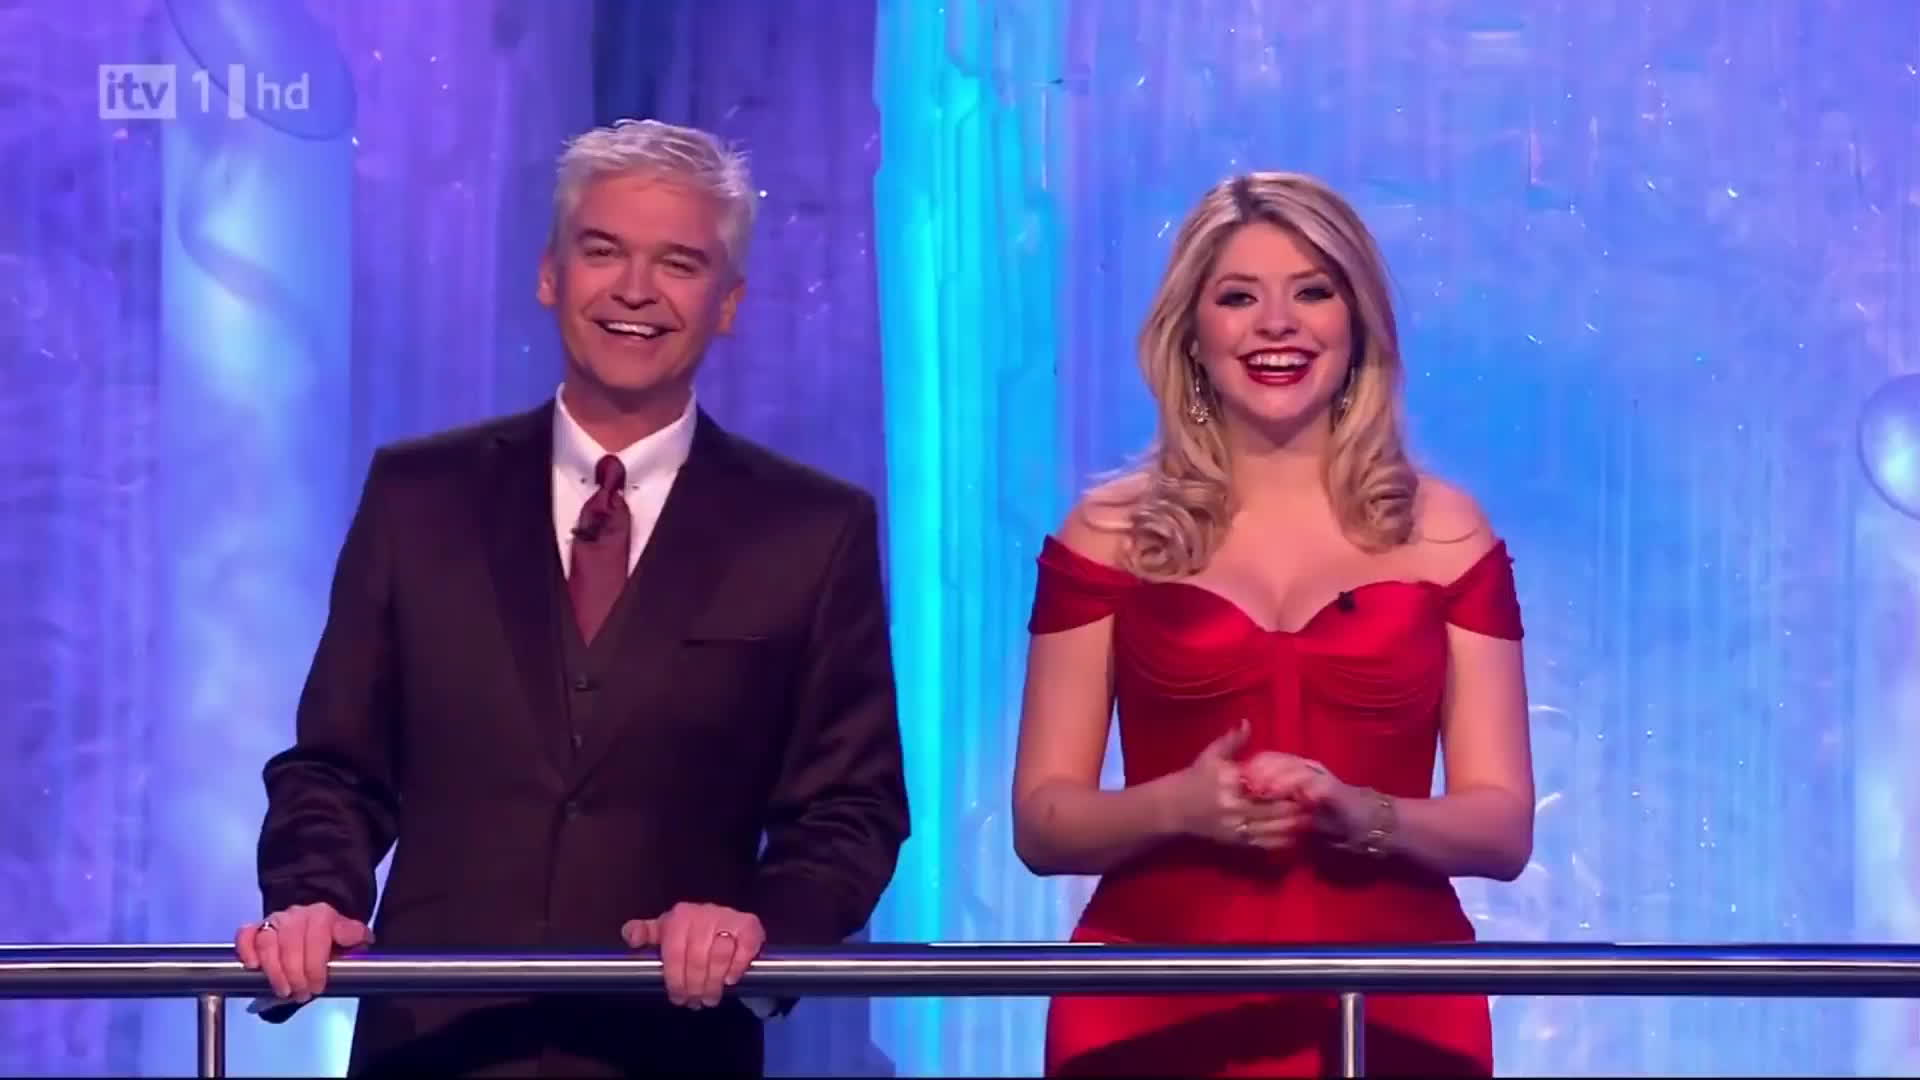 Holly Willoughby, holly willoughby dress, holly willoughby red dress, thehollywilloughby, Cleavage Trance (Busty in Red Dress) GIFs